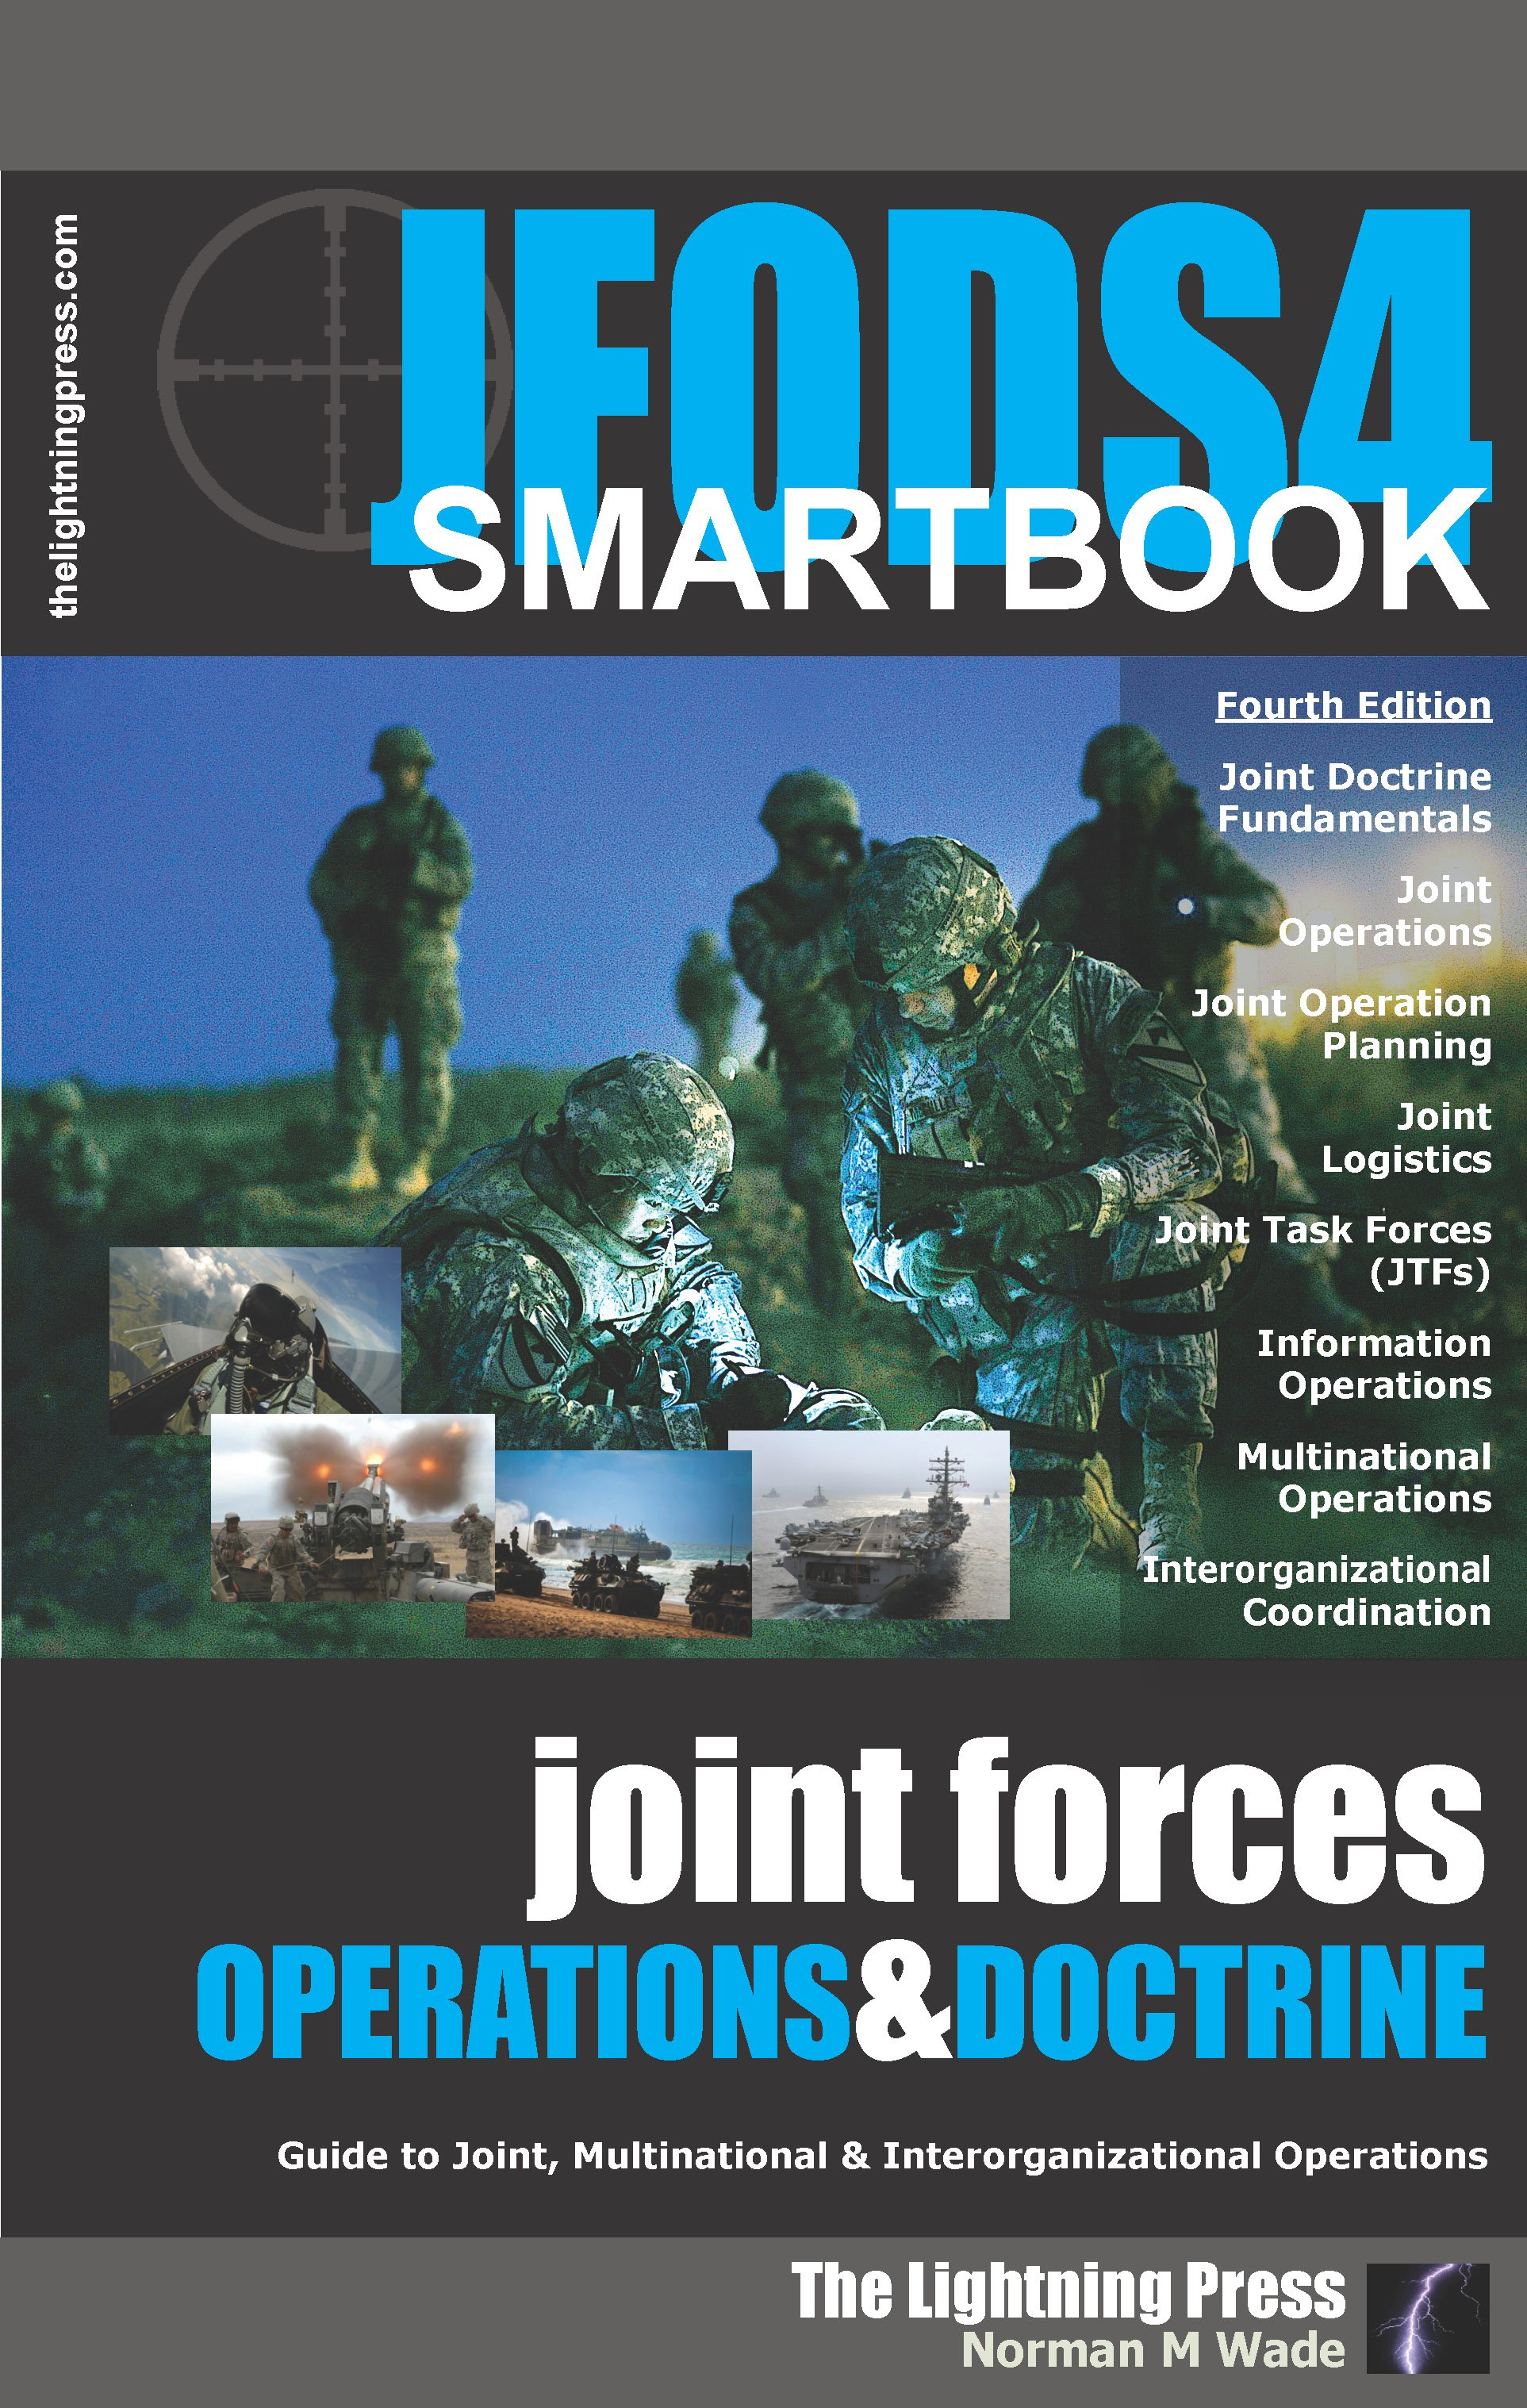 JFODS4: The Joint Forces Operations & Doctrine SMARTbook, 4th Ed. (PREVIOUS EDITION)